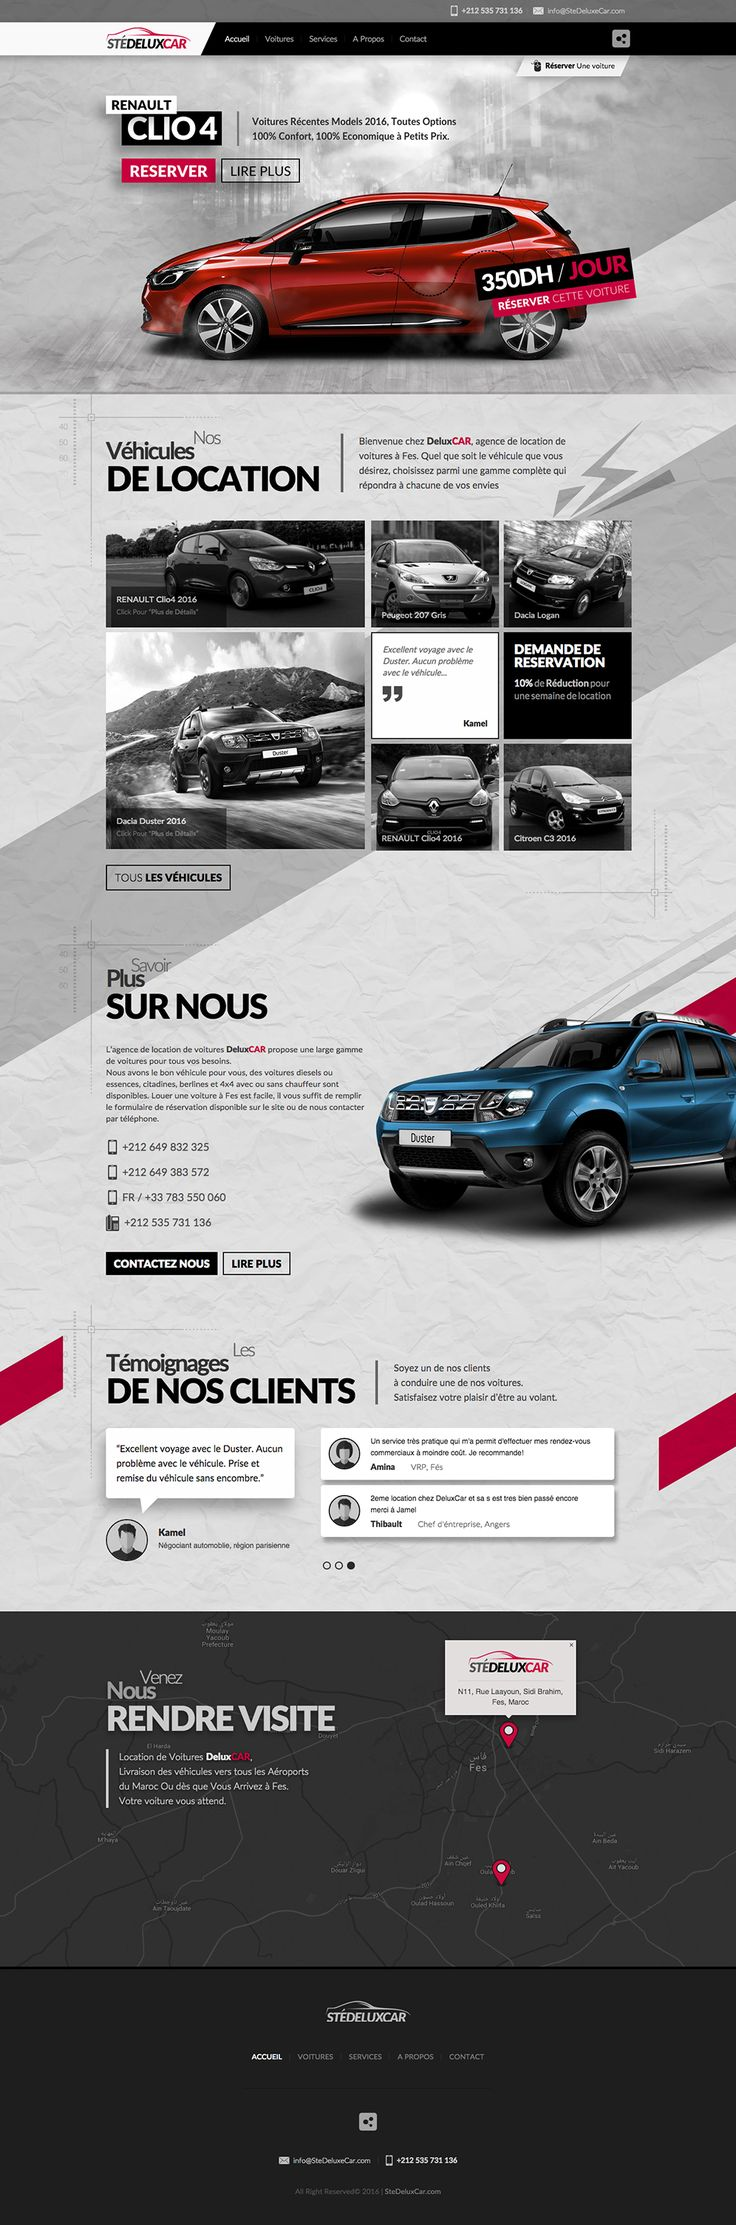 Responsive Website : Web Design & Development for a Rental Car company With an Attractive Revolution Parallax Slider #BlackRedWebDesign, #ResponsiveWebDesign, #RevolutionParallaxSliderDesign, #AttractiveWebDesign, #GreyWebDesign, #RentalCarWebDesign